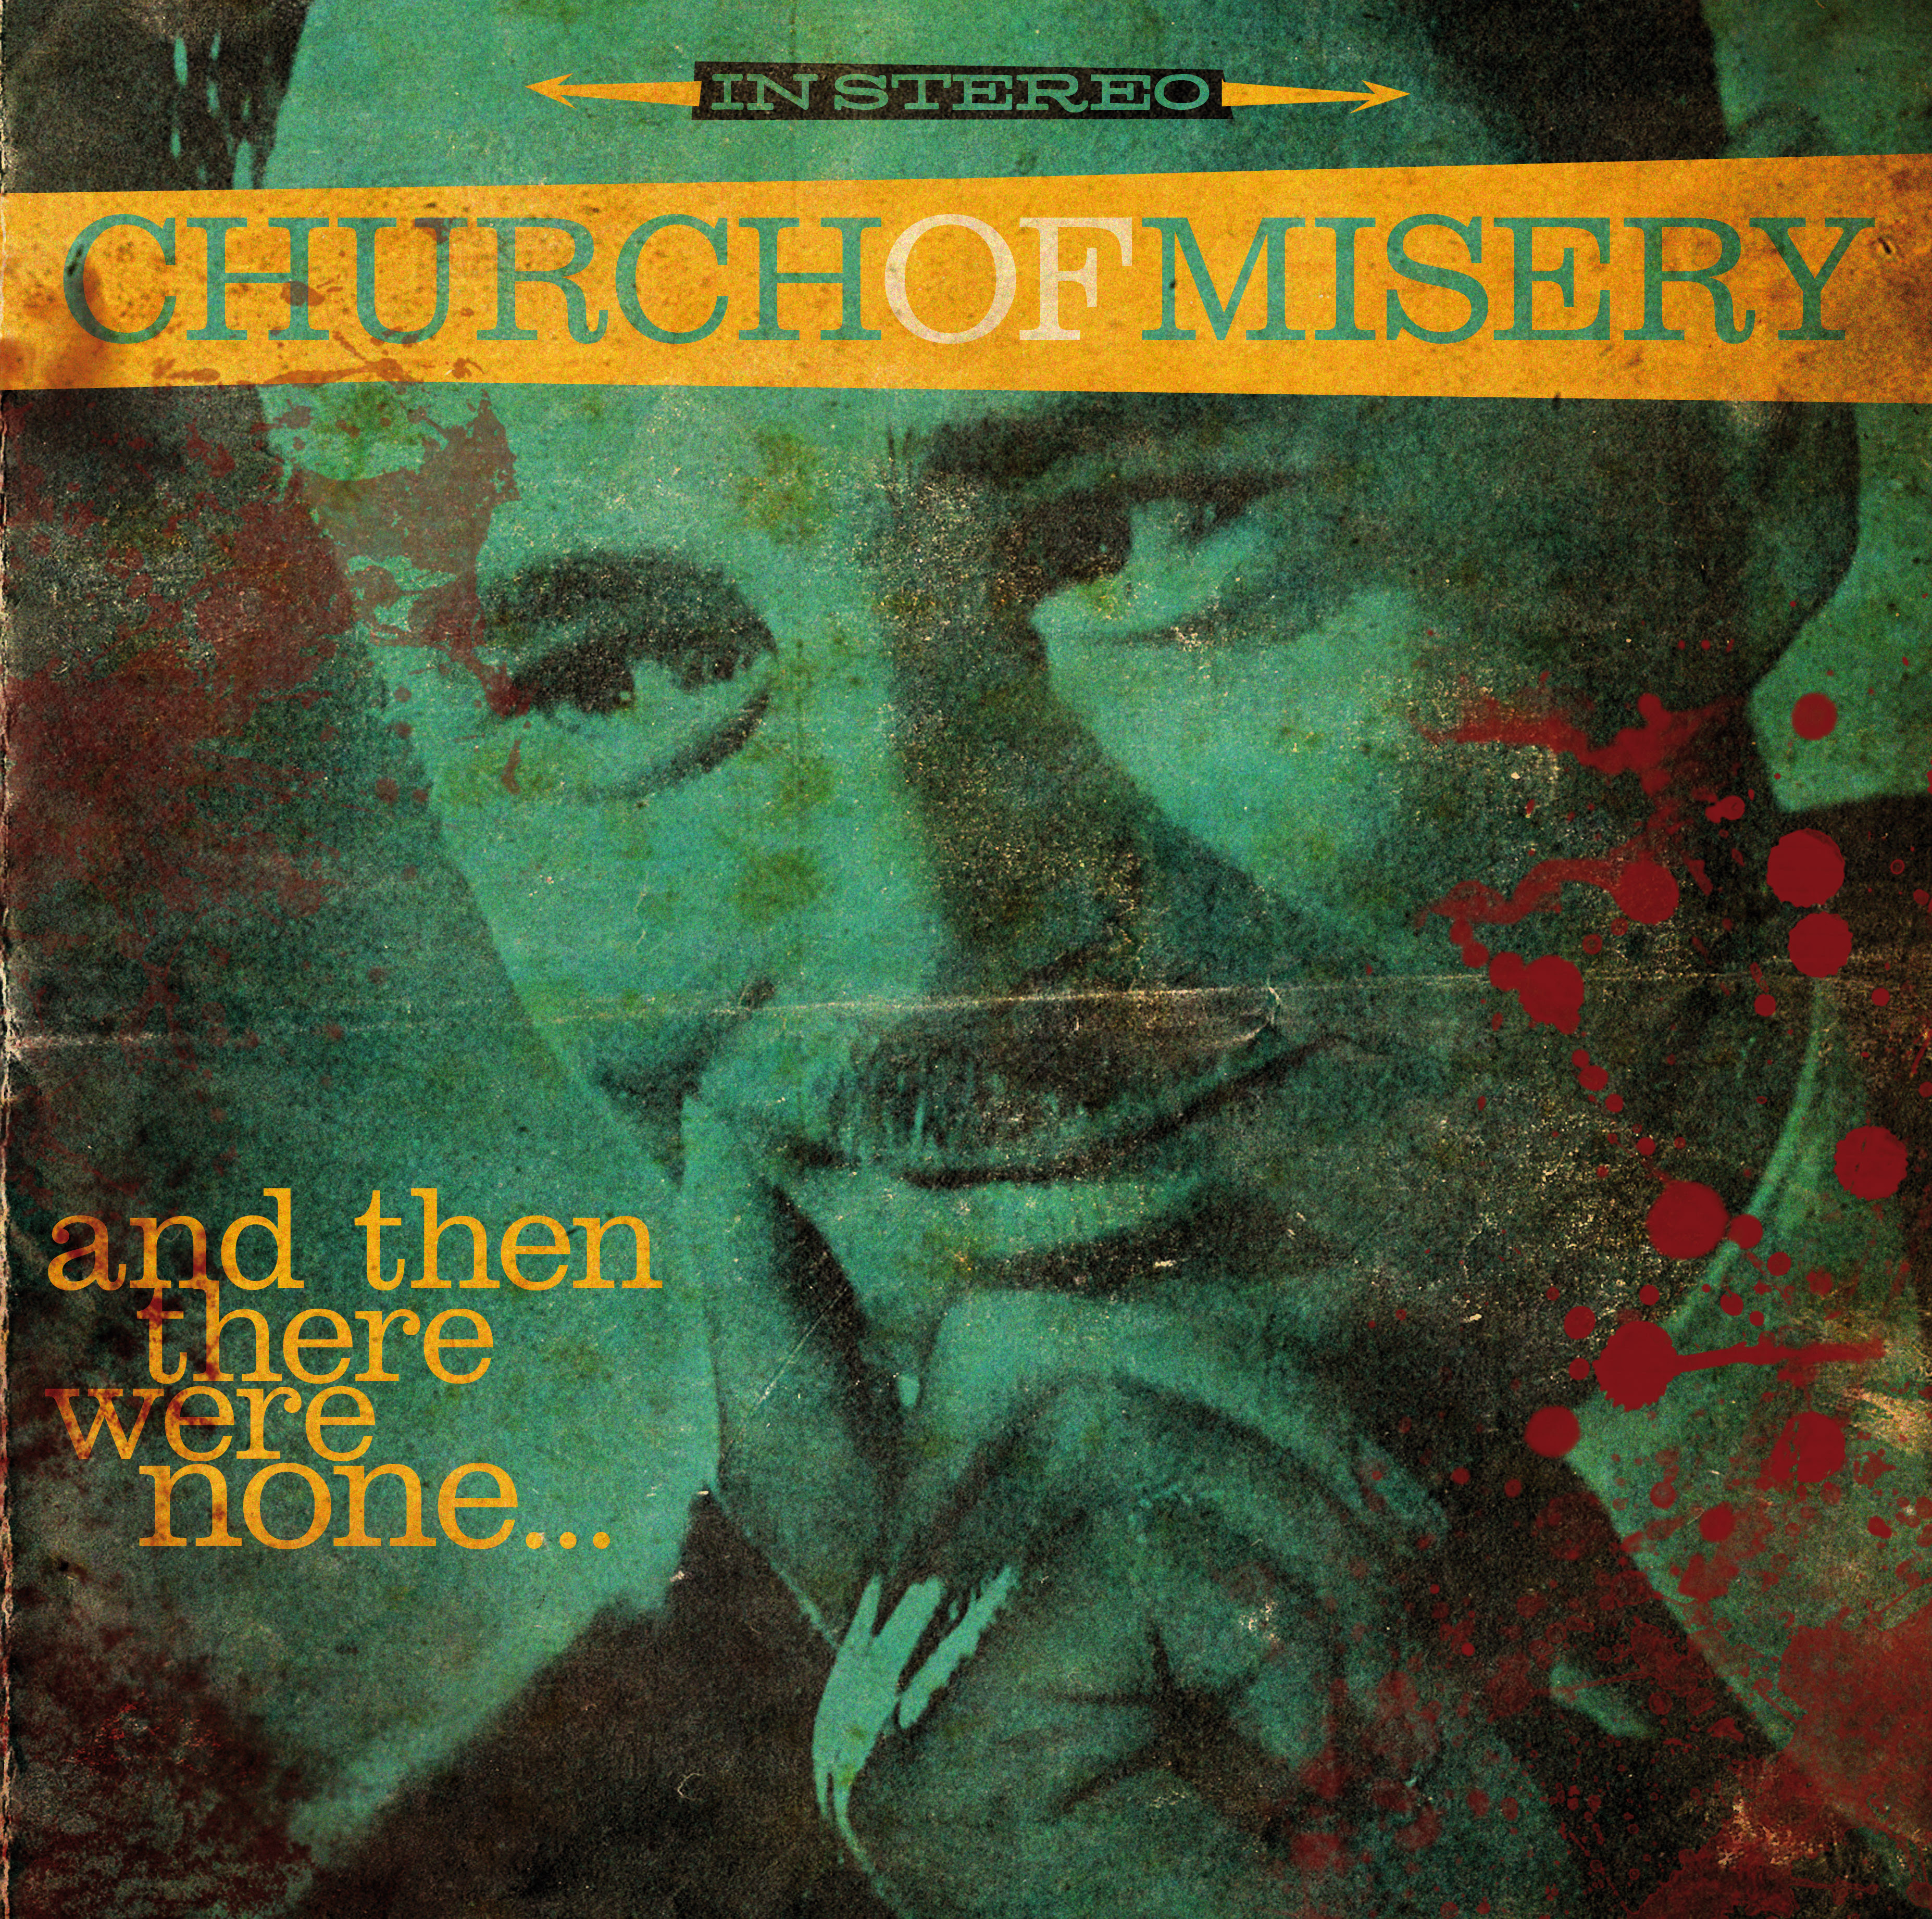 church-of-misery-and-then-there-were-none.jpg